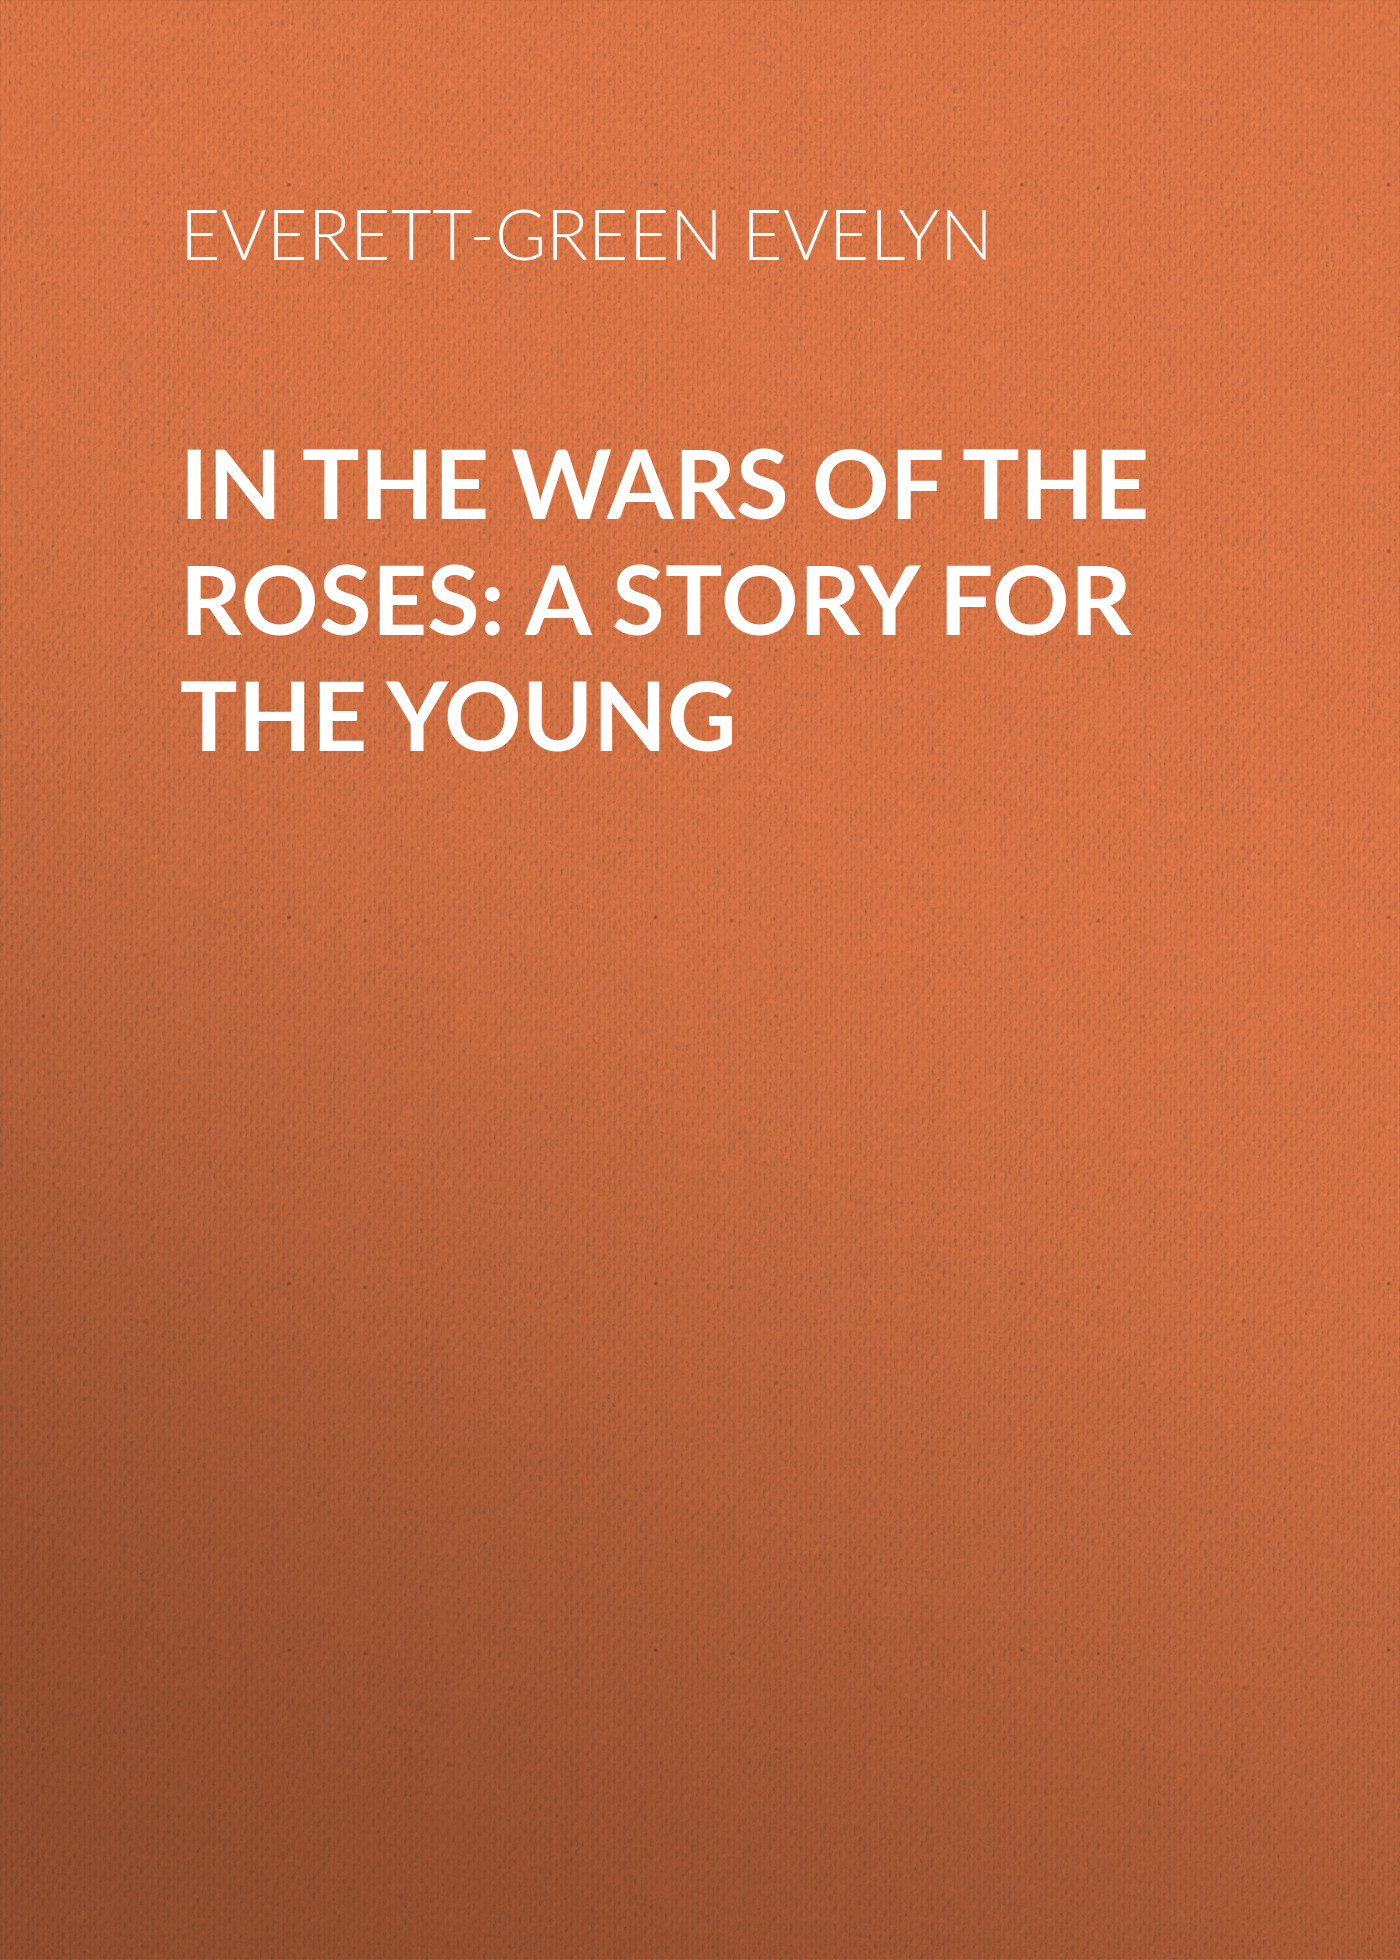 лучшая цена Everett-Green Evelyn In the Wars of the Roses: A Story for the Young